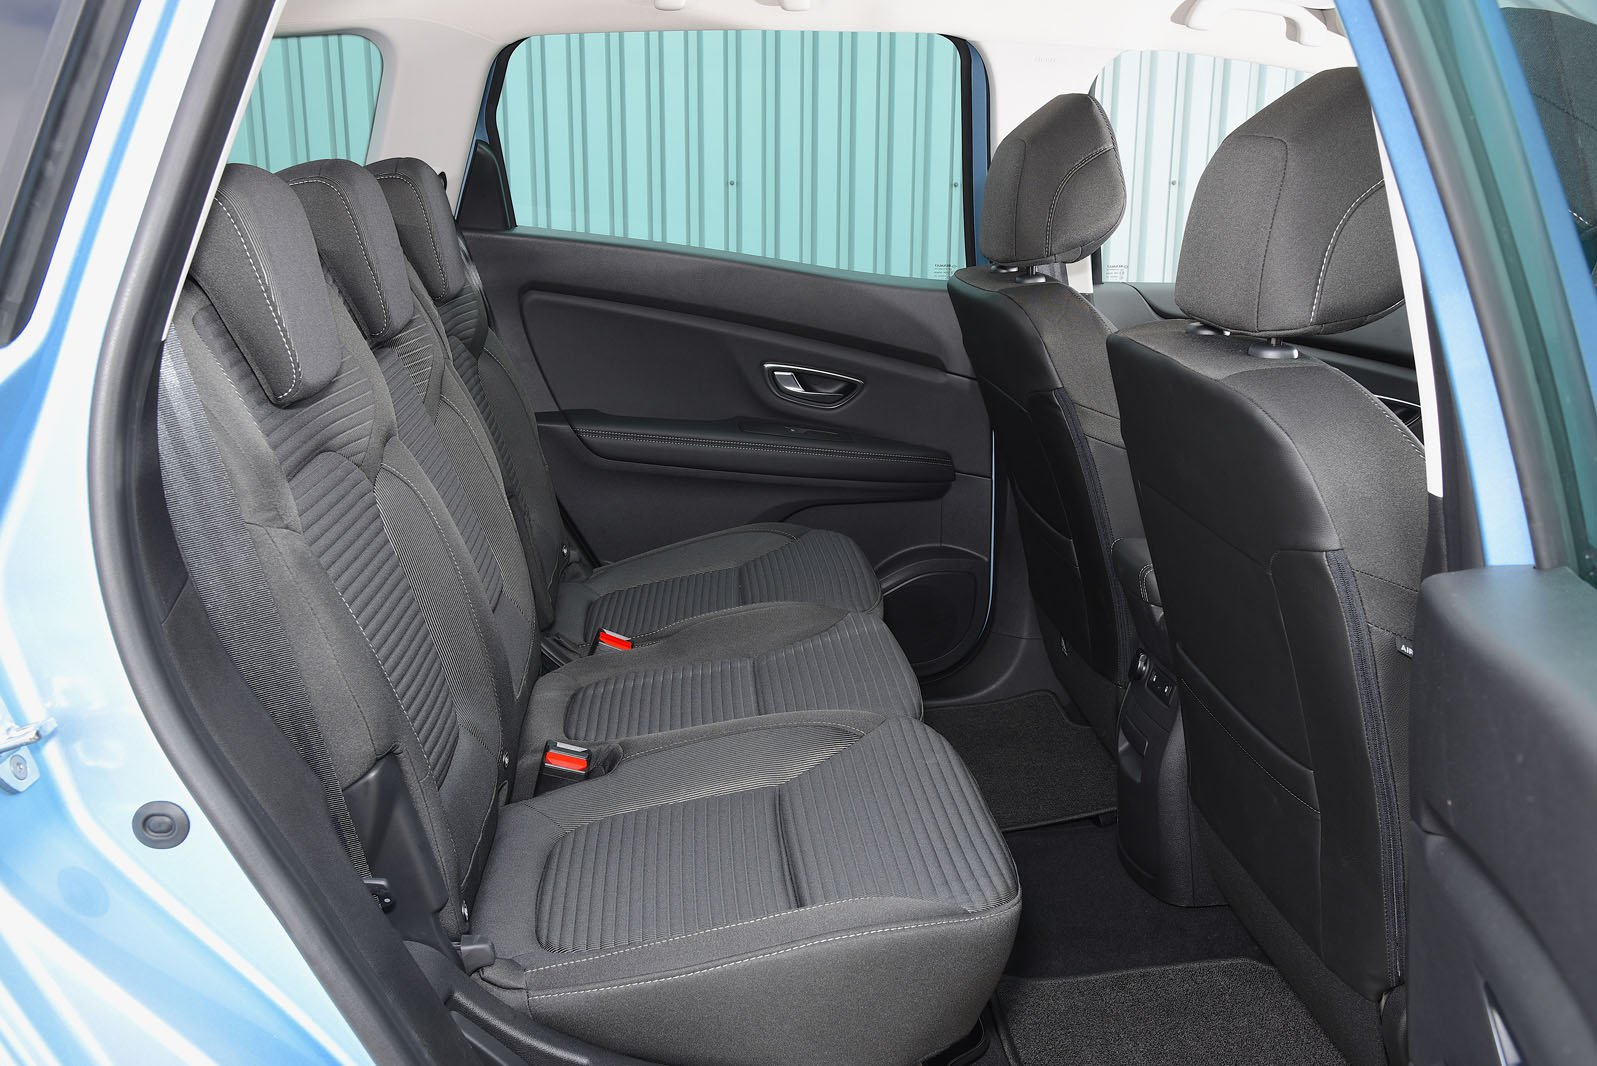 Renault Grand Scenic 2019 rear seats